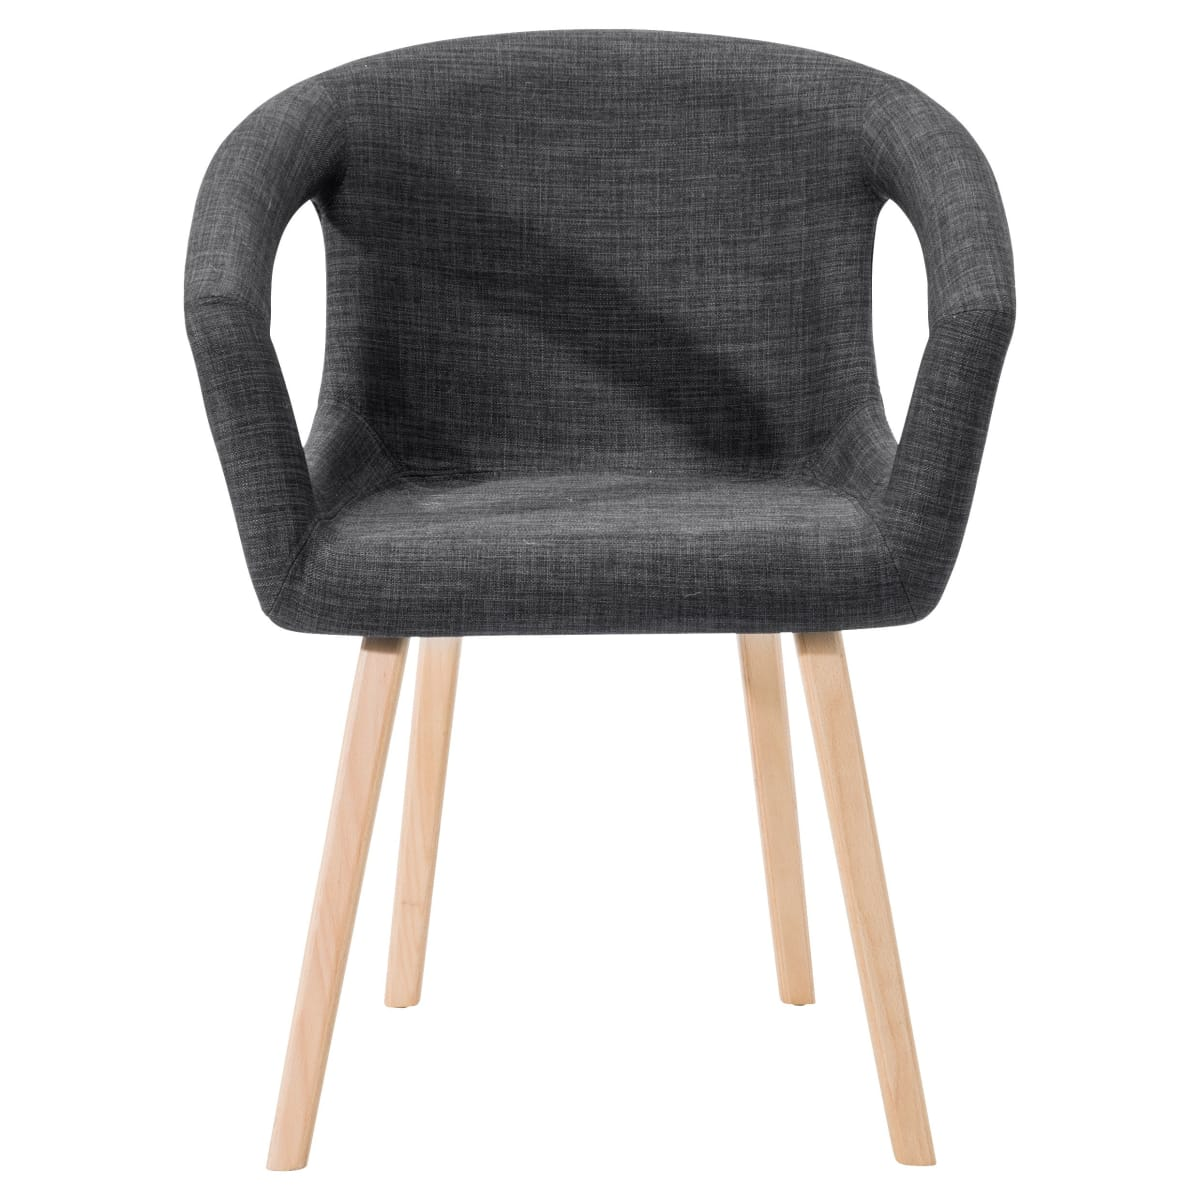 Design stuhl mara chair for Design stuhl hugo